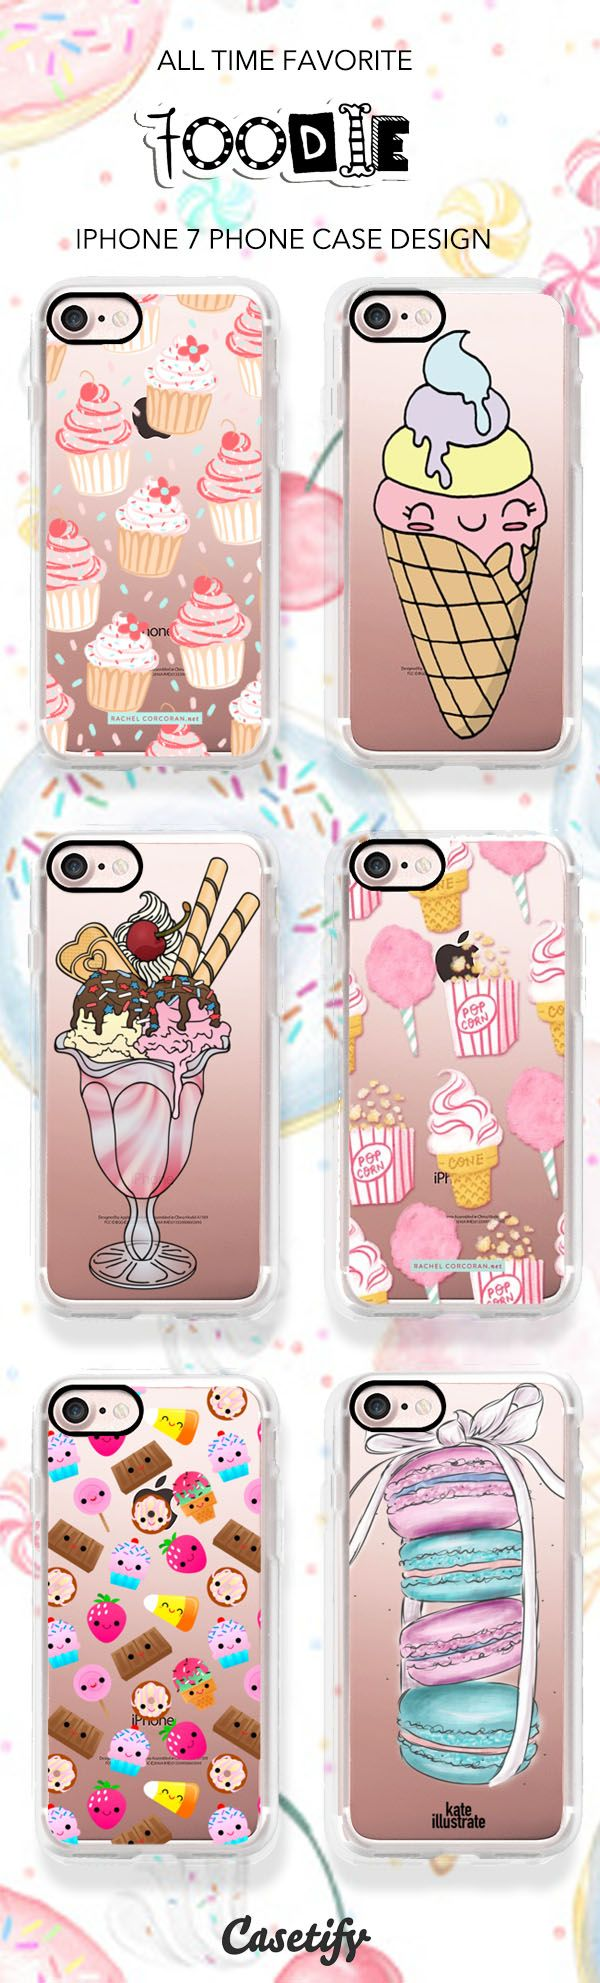 We got that sweet tooth, check these all time favourite iPhone case designs here > https://www.casetify.com/artworks/wXPnVktSk3 all available in iPhone 6 case, iPhone 7 case and iPhone 7 Plus Case